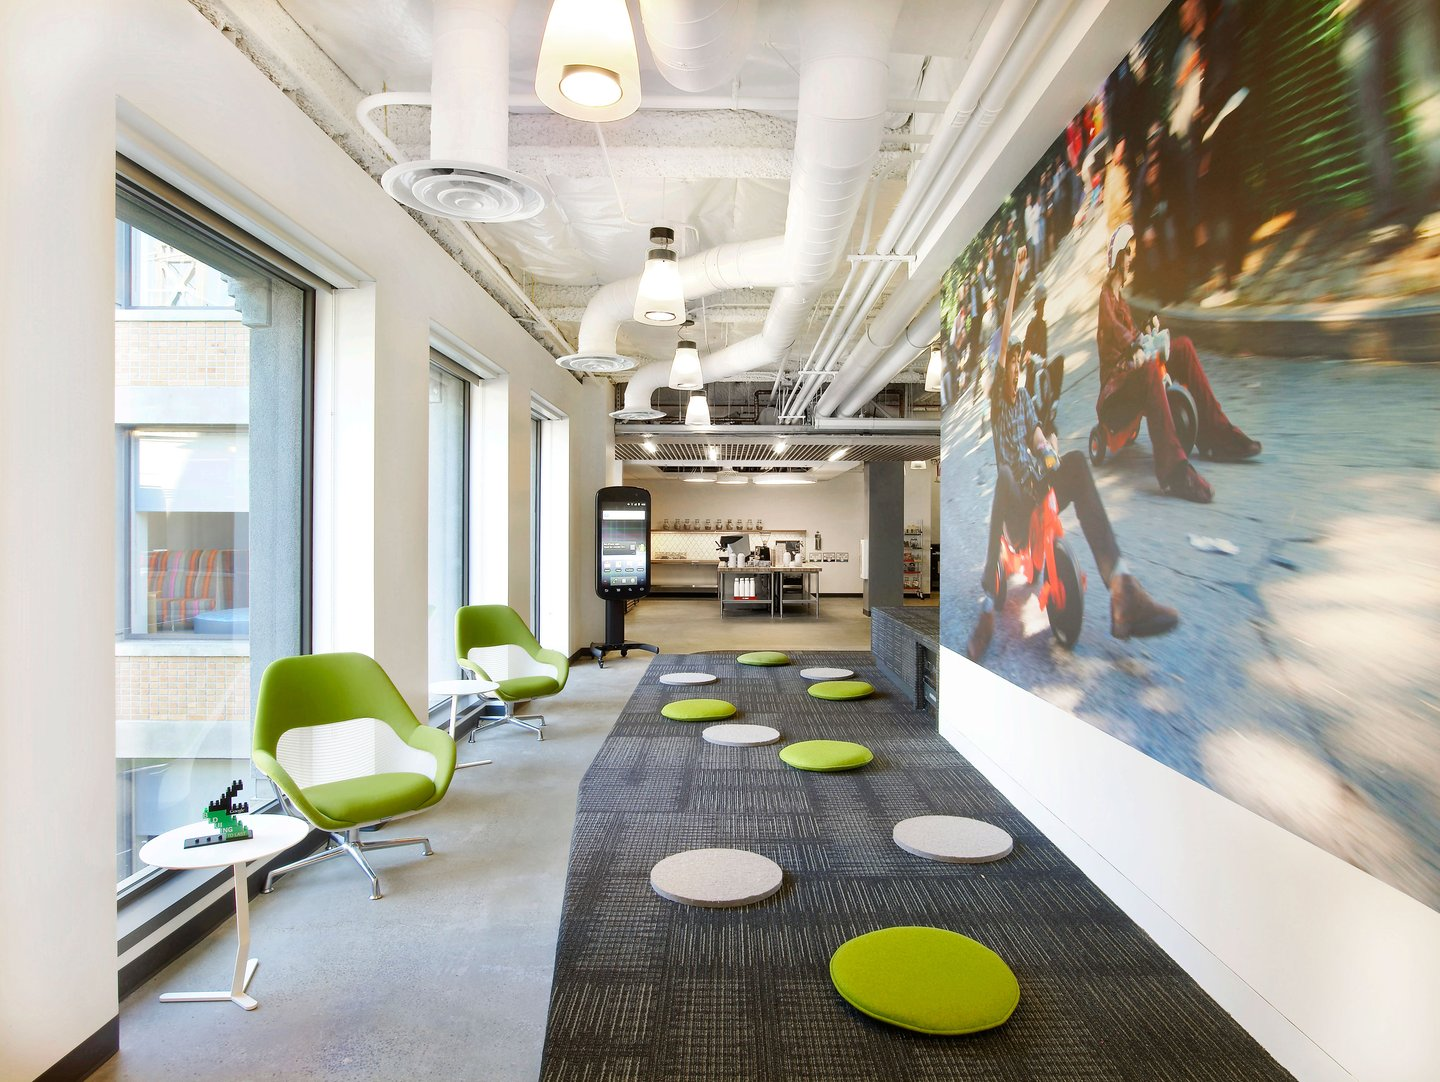 Google lounge space custom spaces for Goodl